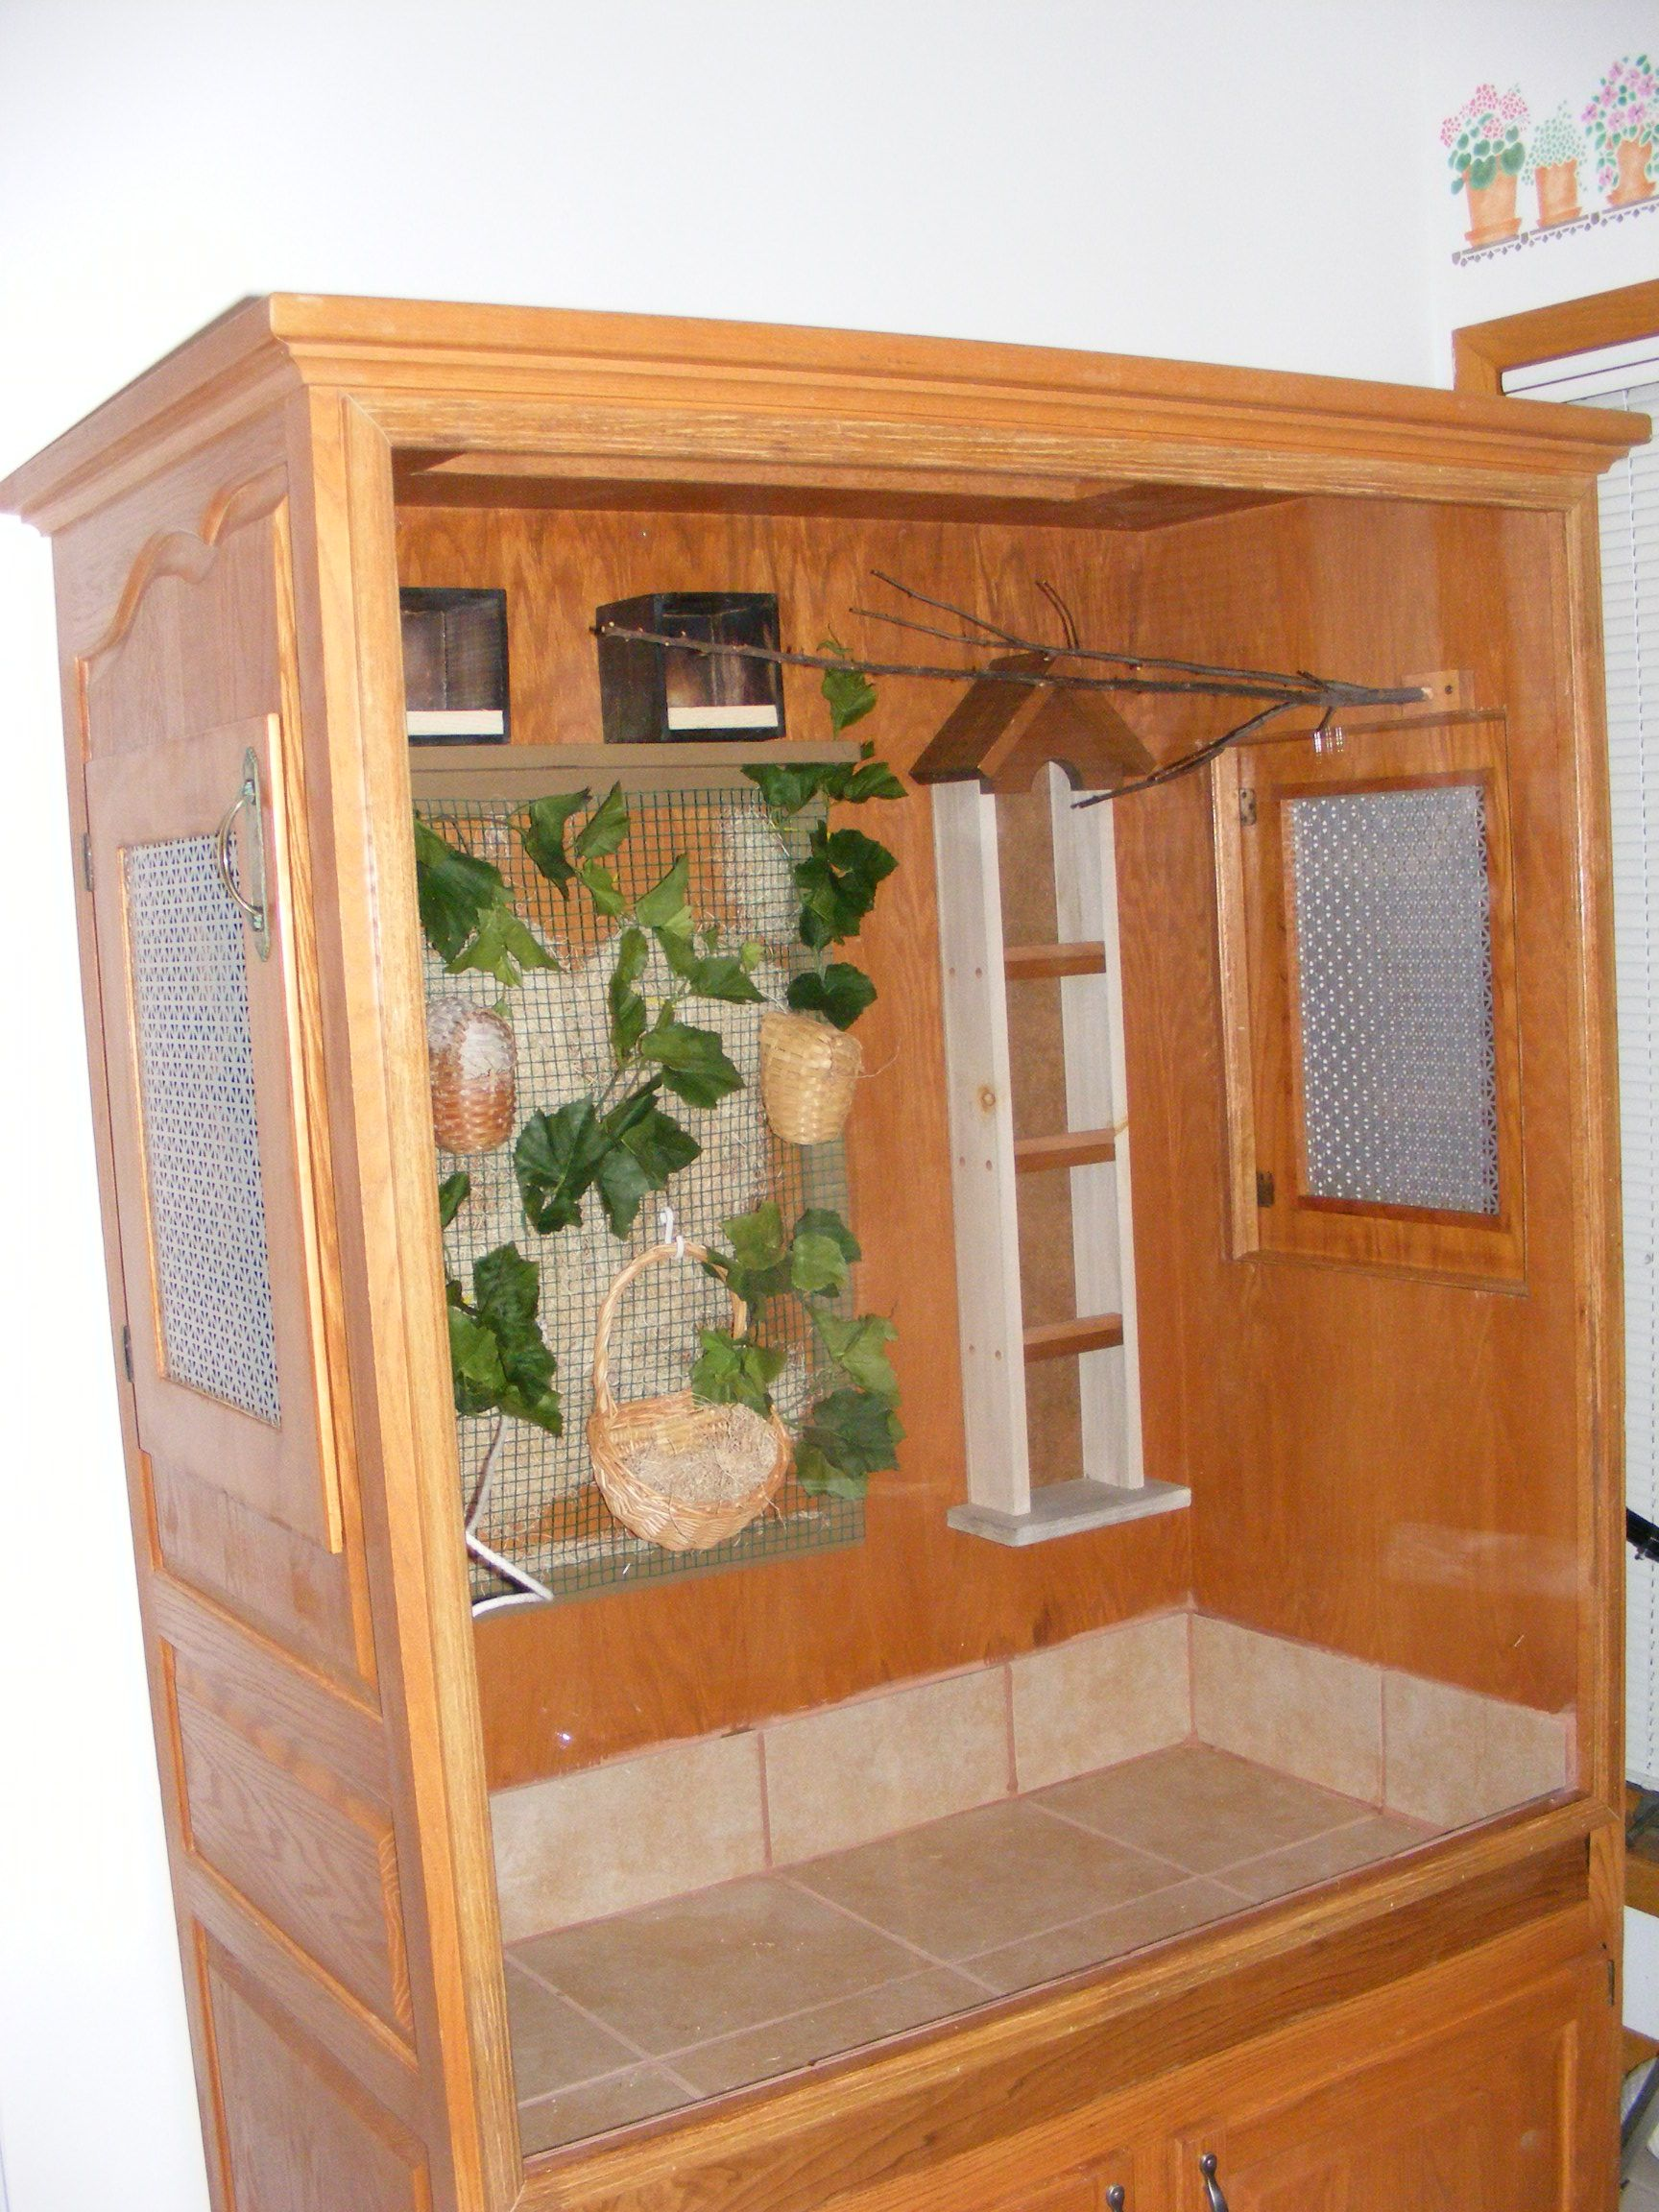 The bird aviary we made out of a big screen TV cabinet ...